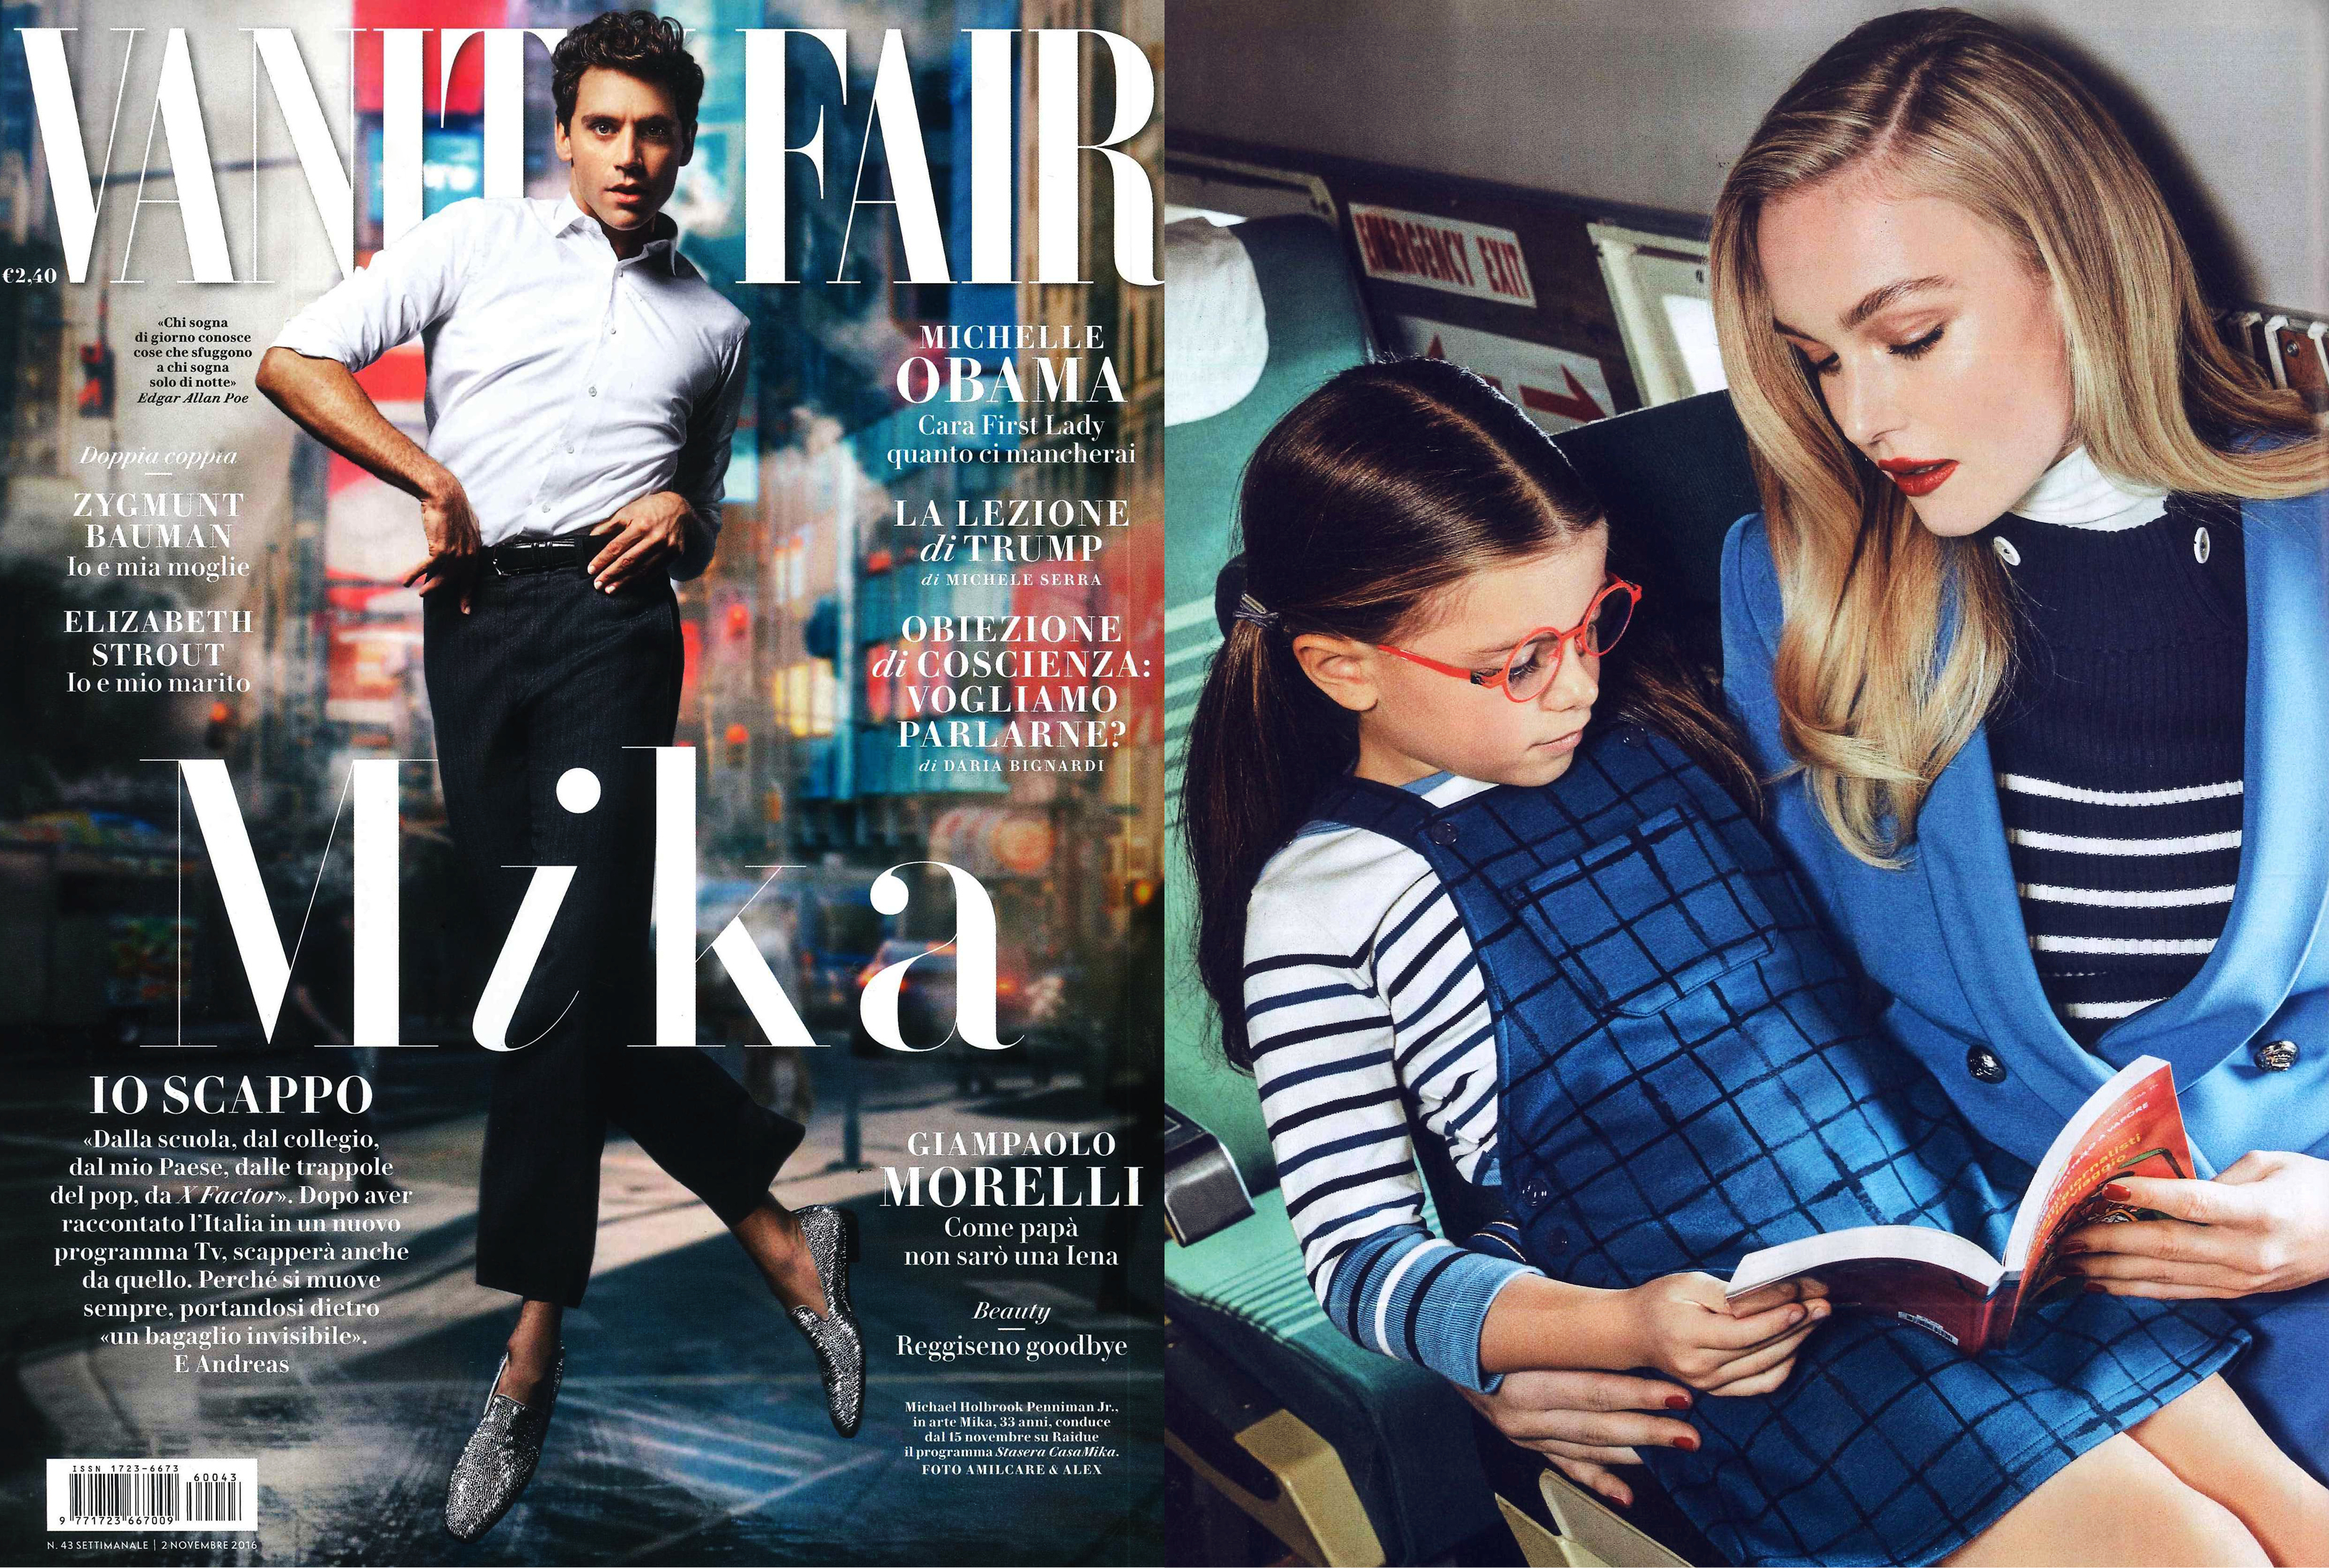 MYKITA FIRST glasses PANDA featured in Vanity Fair Italy